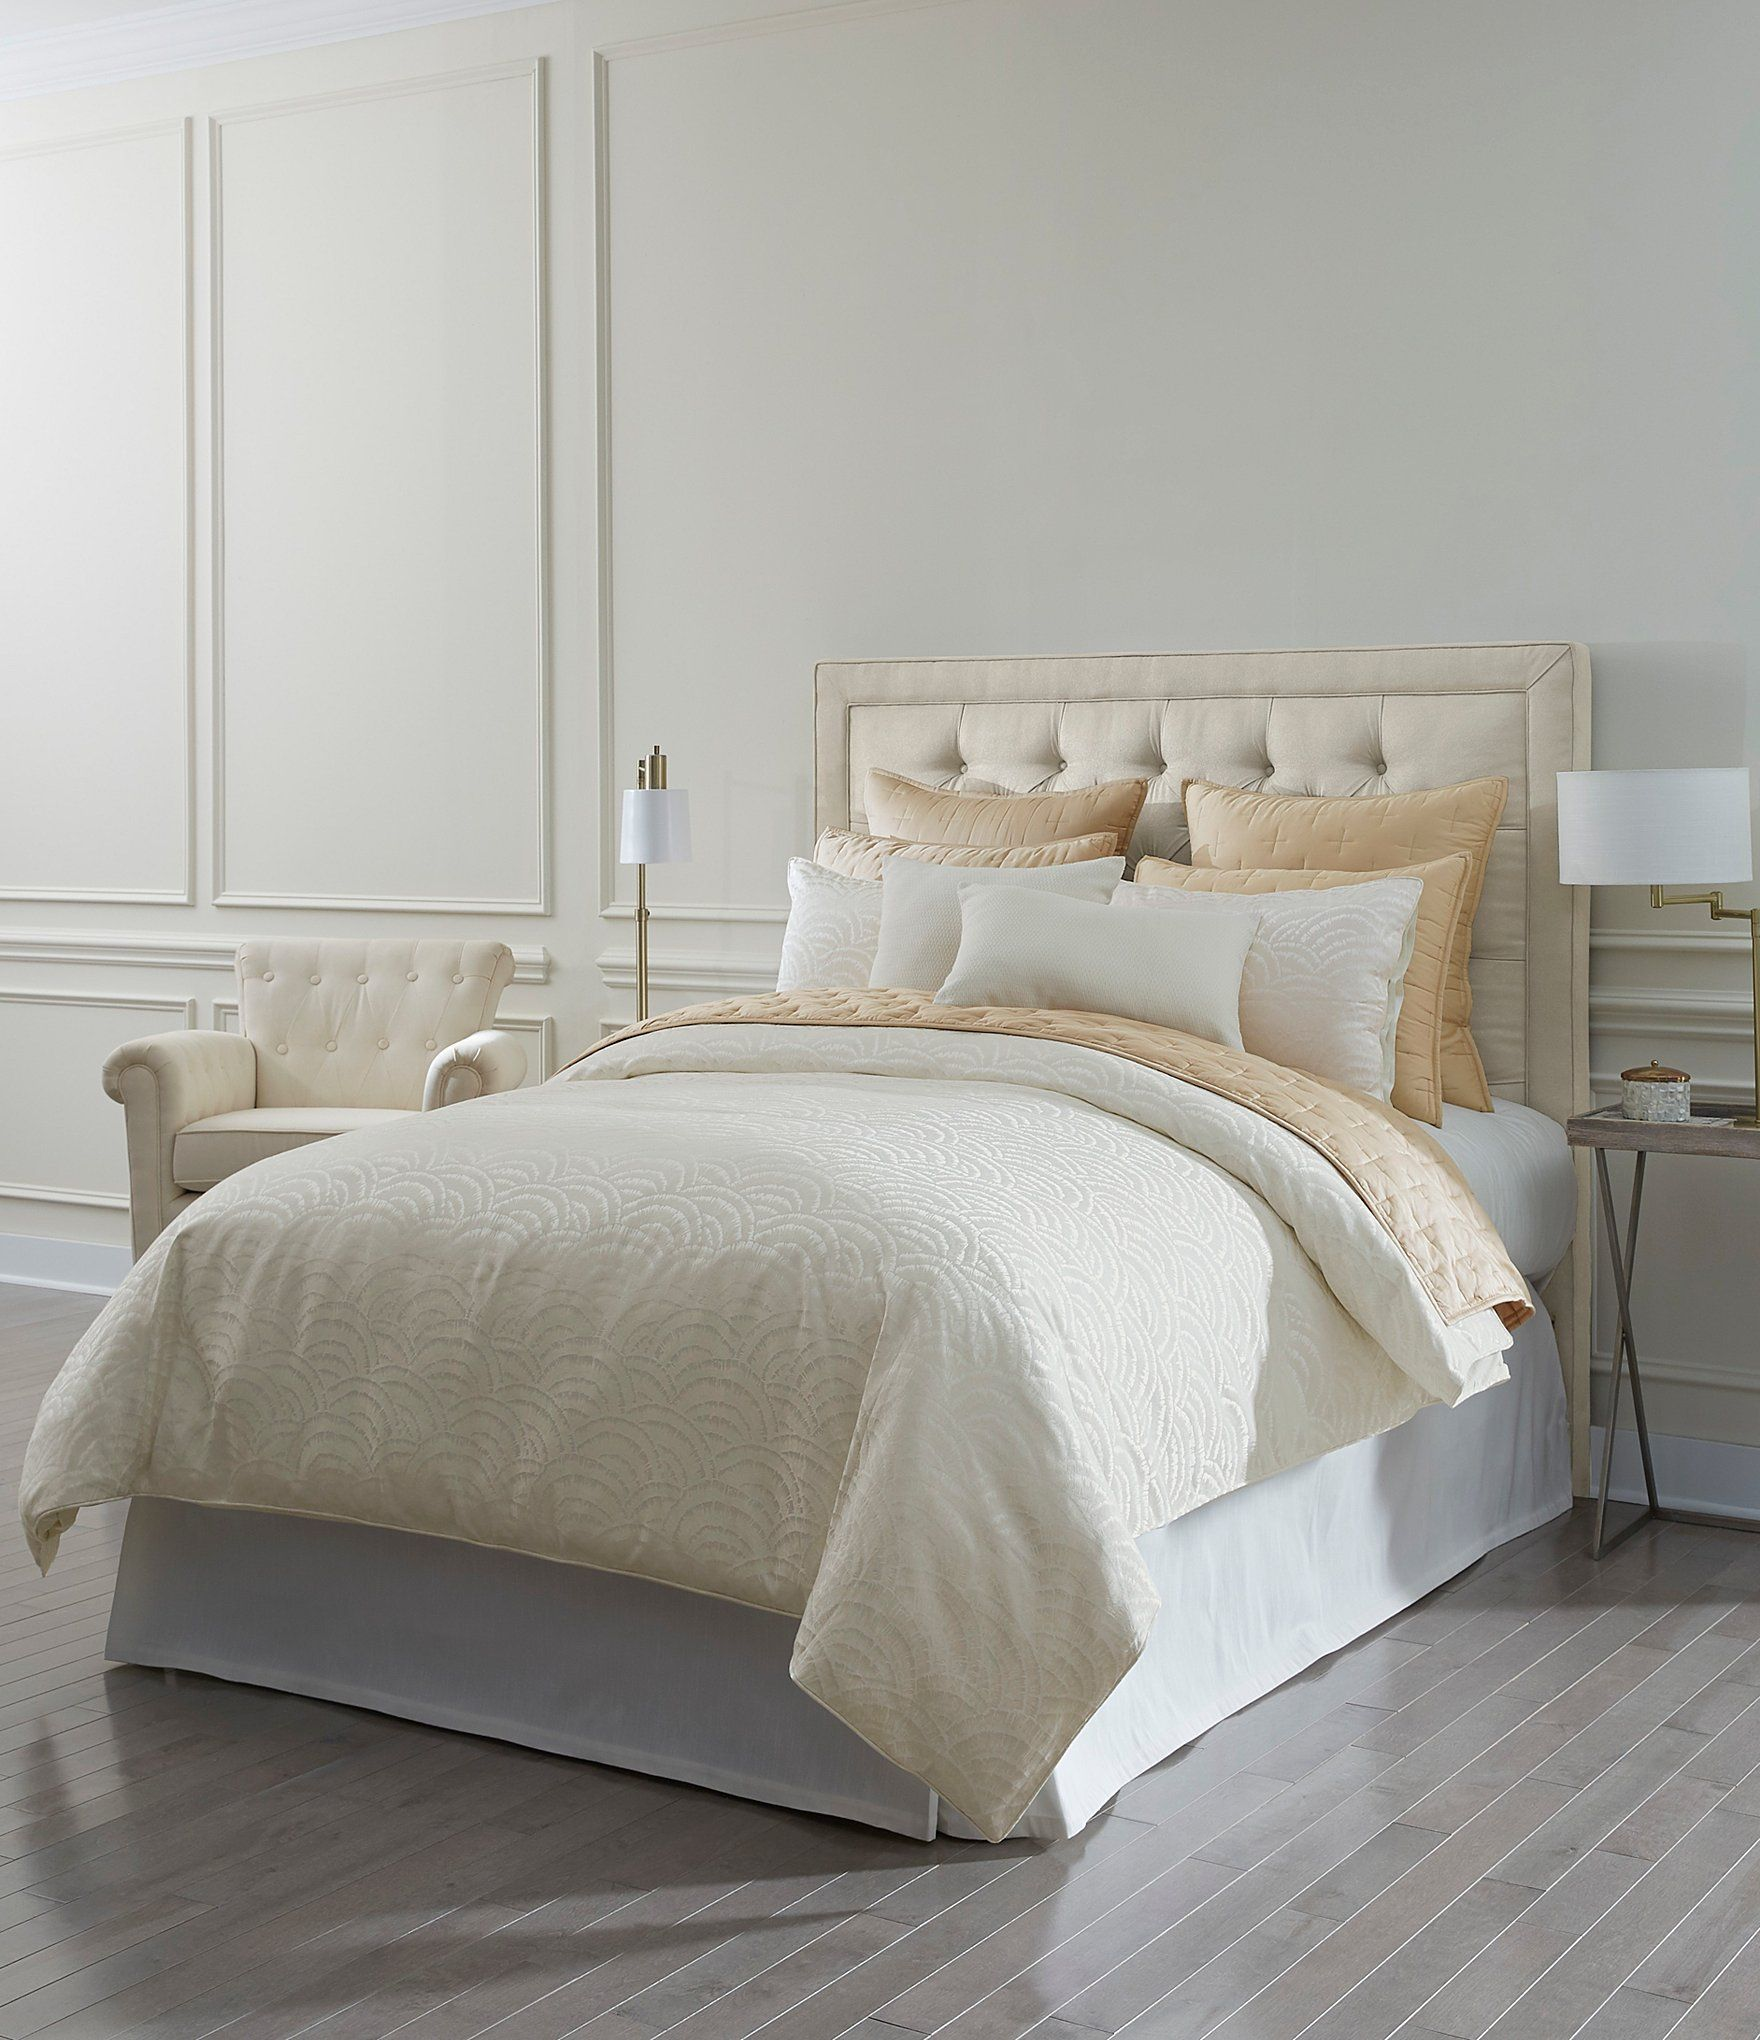 From Luxury Hotel, this duvet mini set features: Woven pattern frontSolid sateen reverseButton closure on duvetSide hidden 4-clear button closure on shamsPolyester, cottonFabric ties to secure duvet insert (sold separately)Machine washFull/Queen duvet mini set includes:Approx. 92